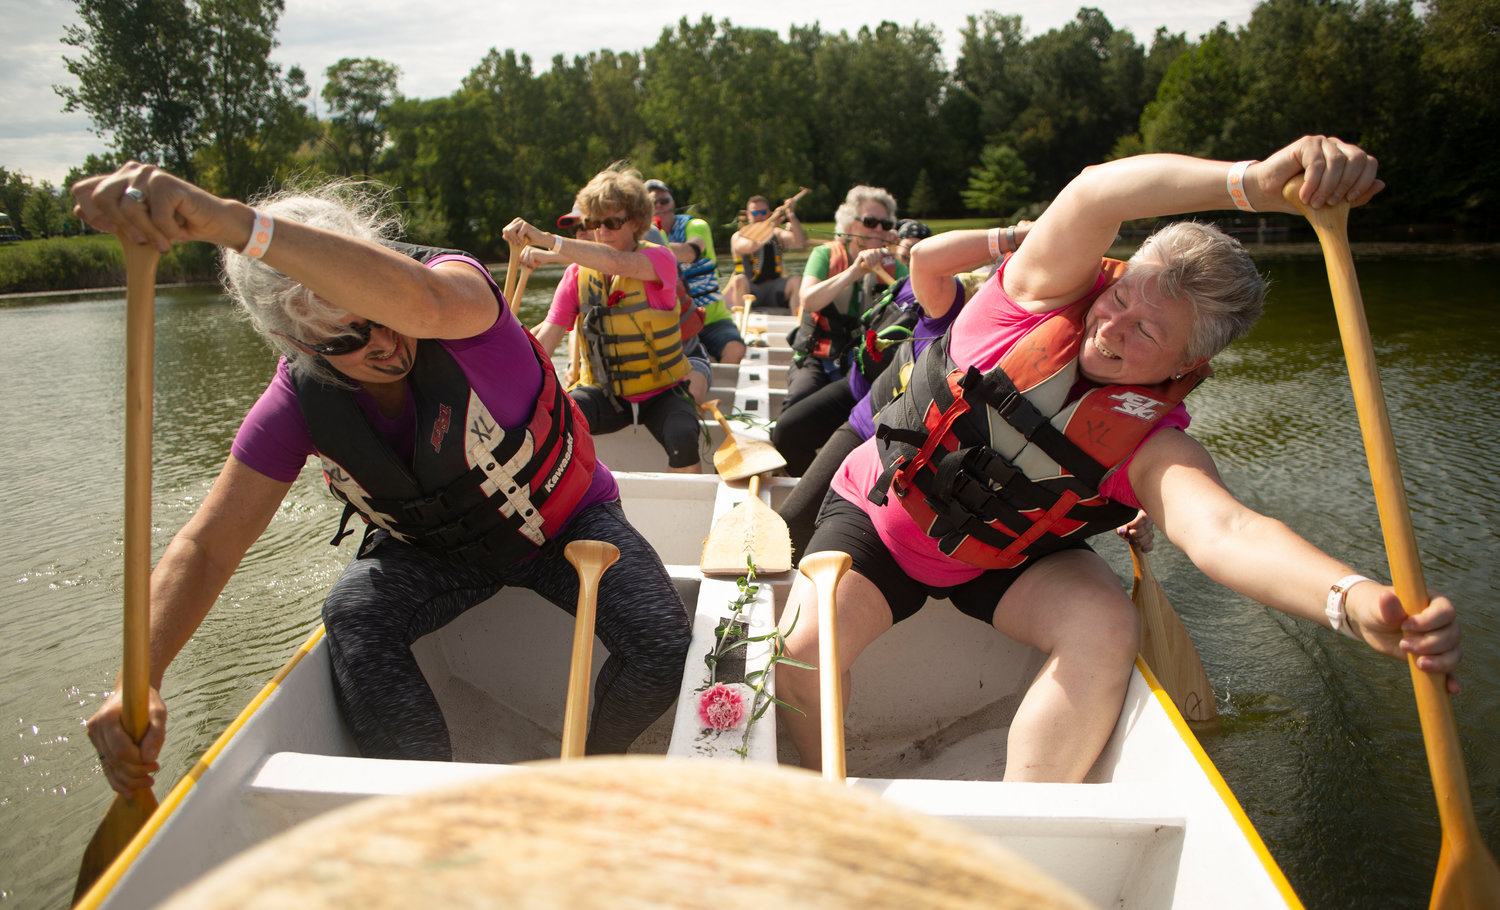 Ann Stanton (left) and Jennifer Summerville (right) lead the team to the center of the lake to release carnations in remembrance of those who have passed due to cancer, or are still fighting.